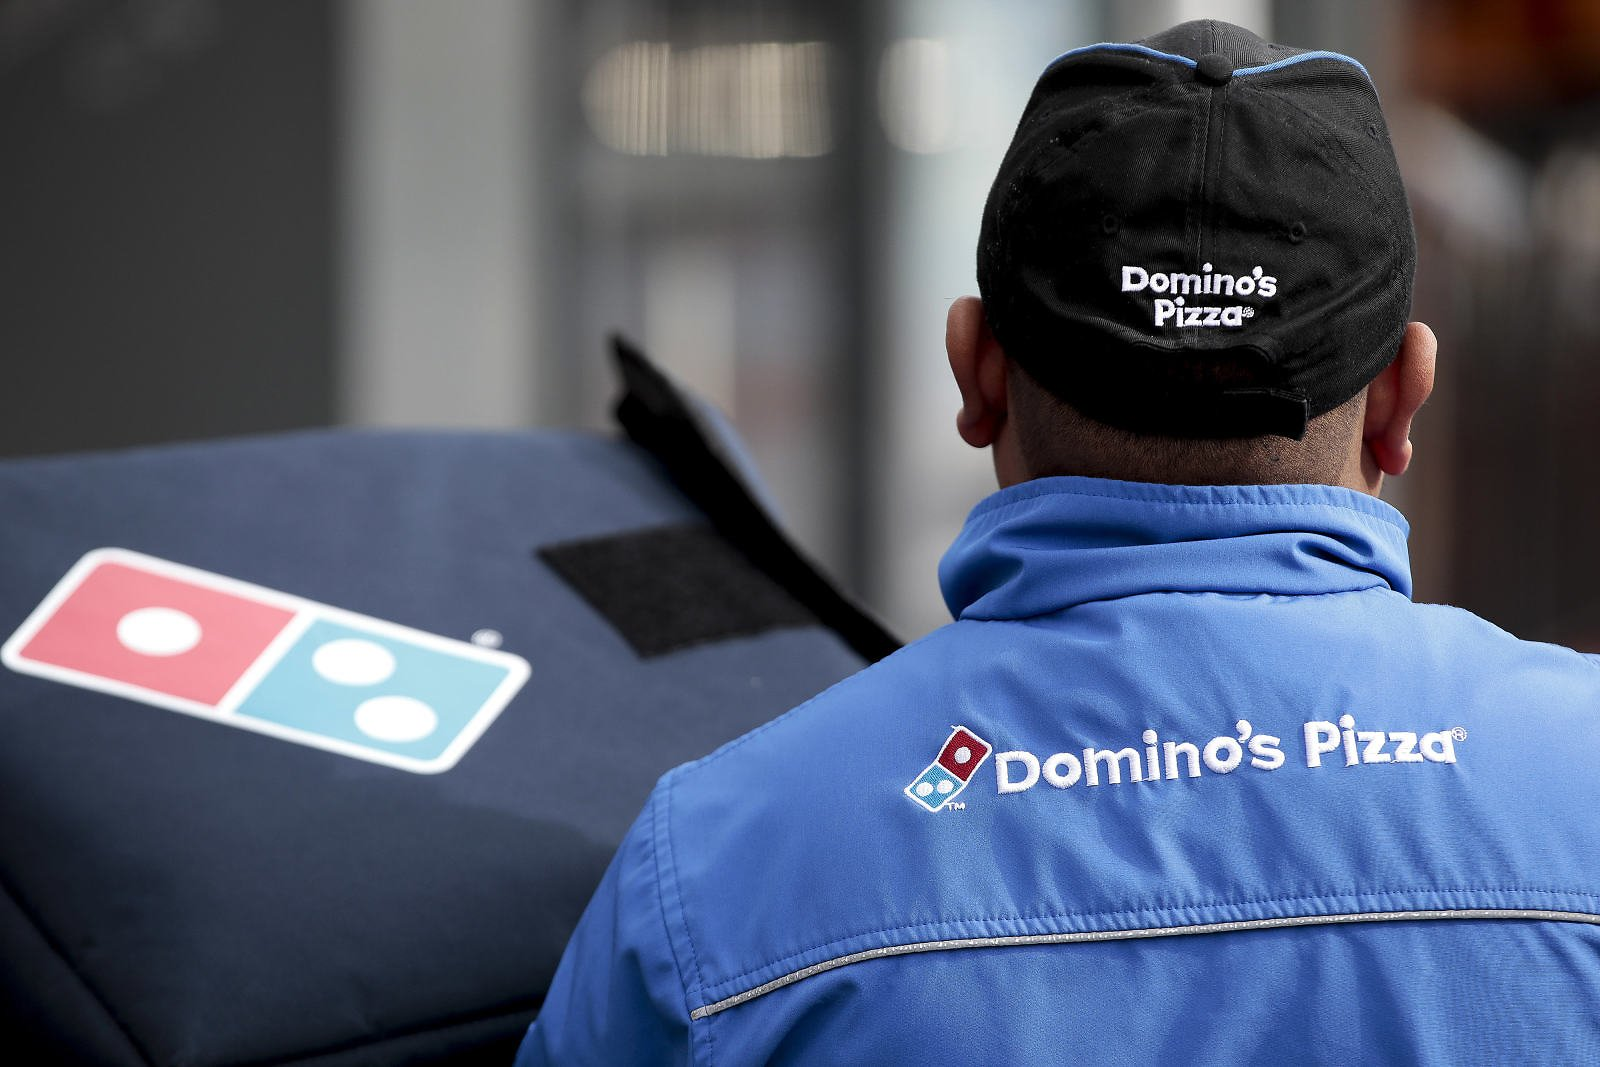 Domino's CEO On Advertising Spending: 'We're Not Slowing Down At All'